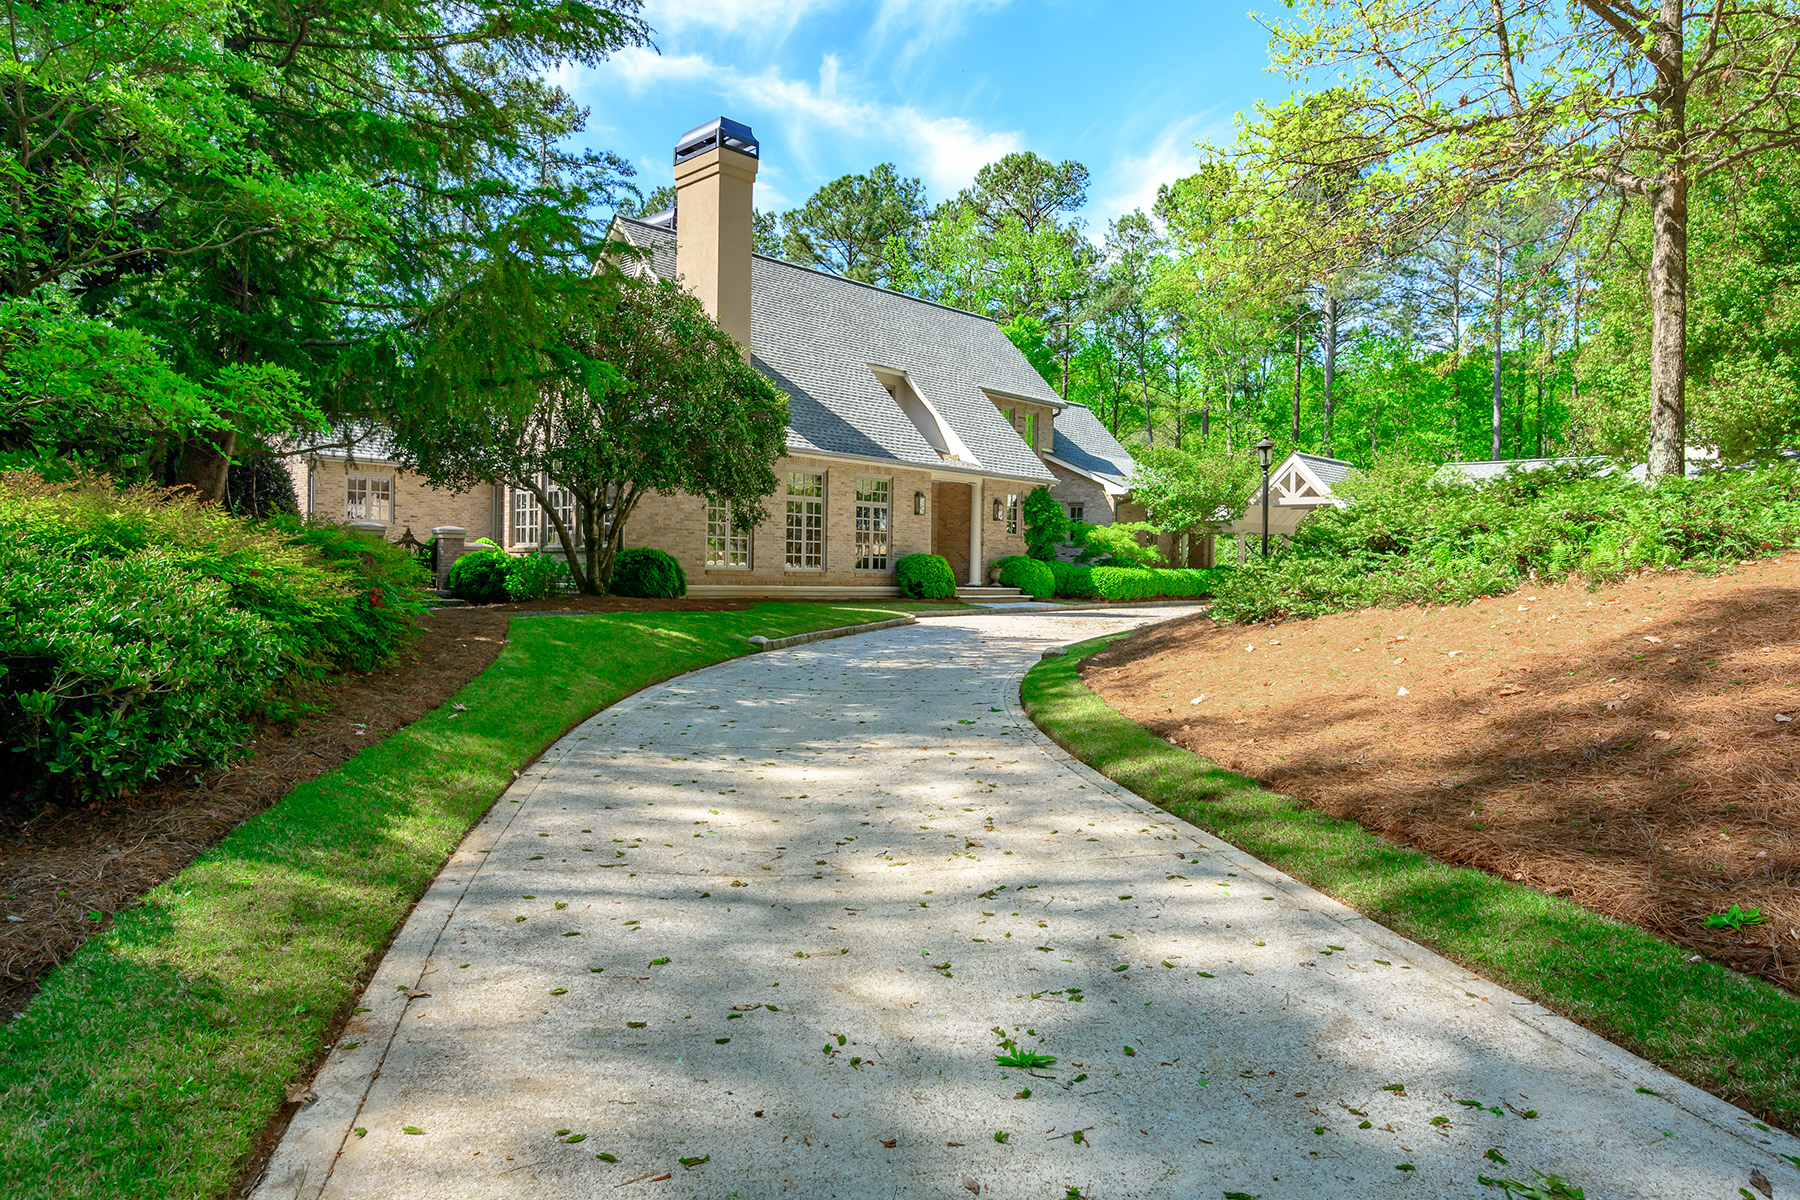 Single Family Homes for Sale at French-Inspired Custom Home in Peaceful Setting 2830 Tanner Lake Trail Marietta, Georgia 30064 United States